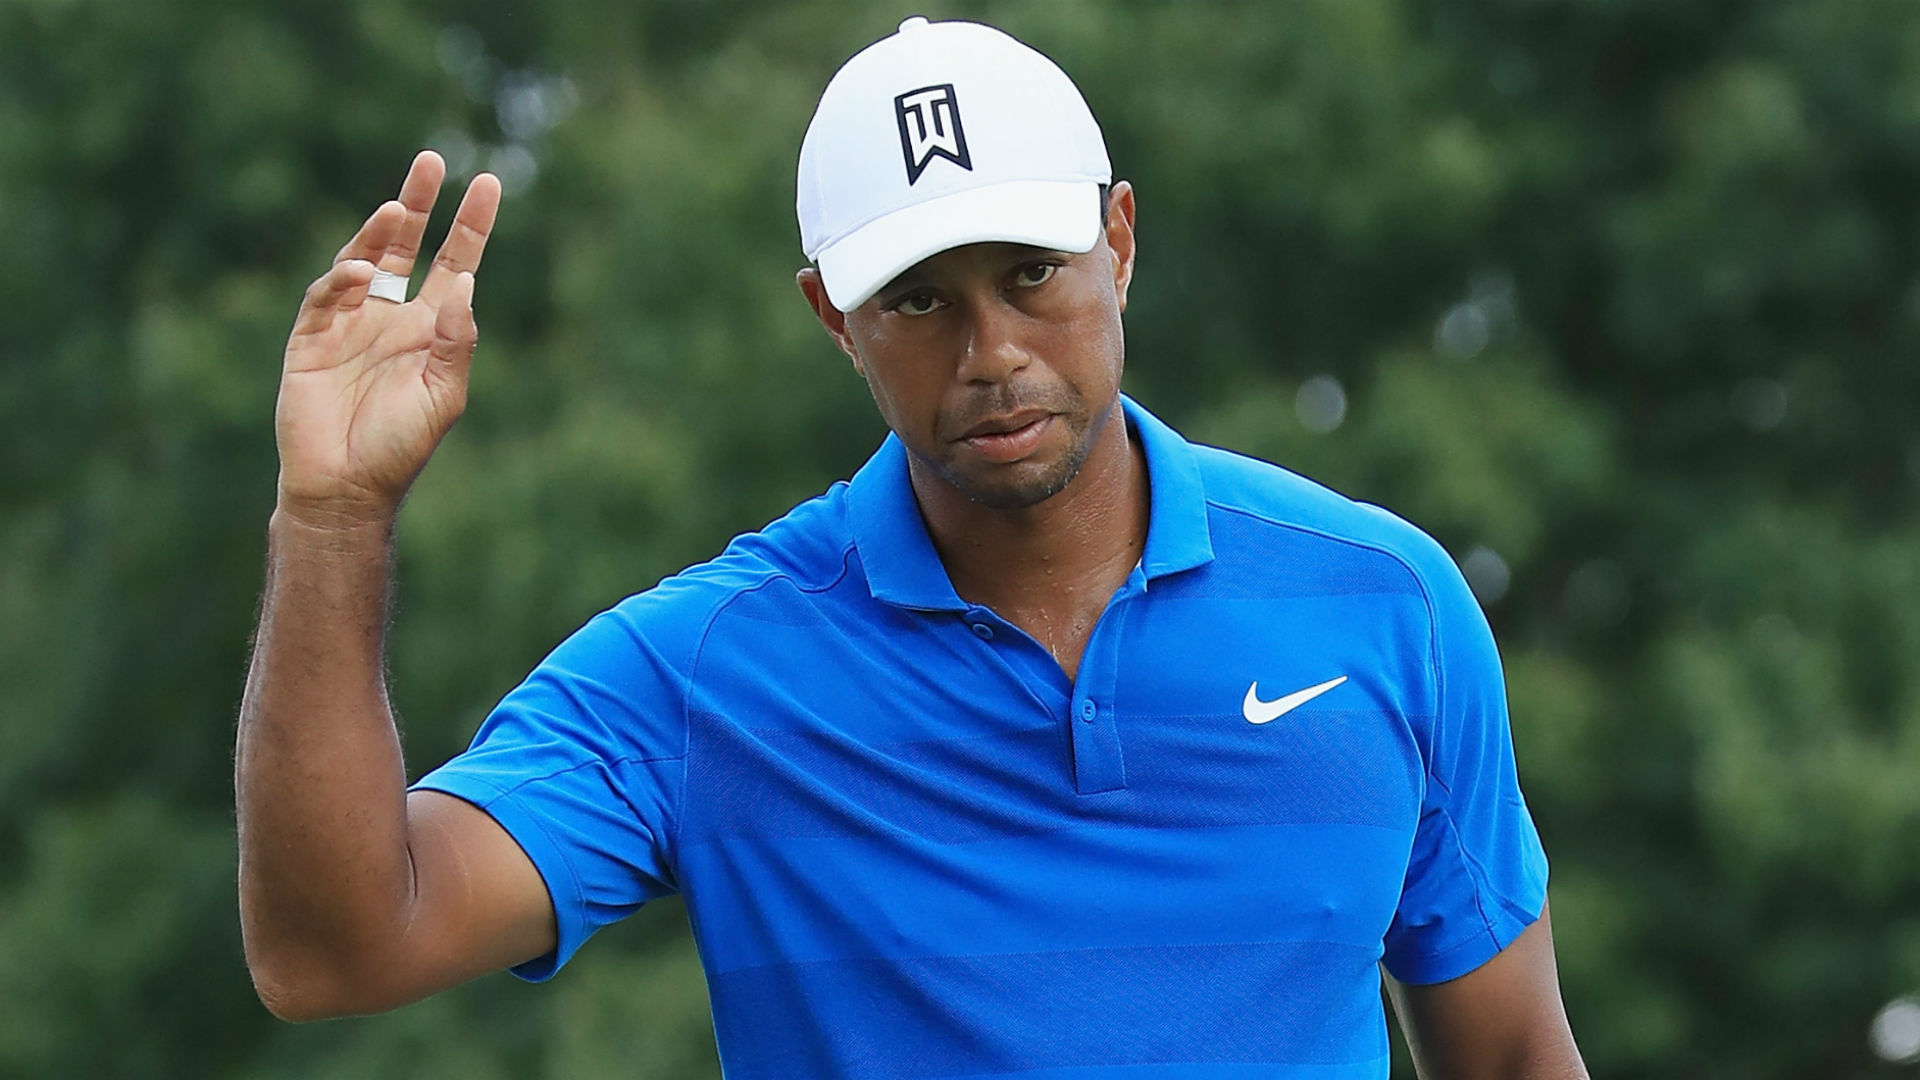 Tiger Woods wins Tour Championship, Twitter reacts